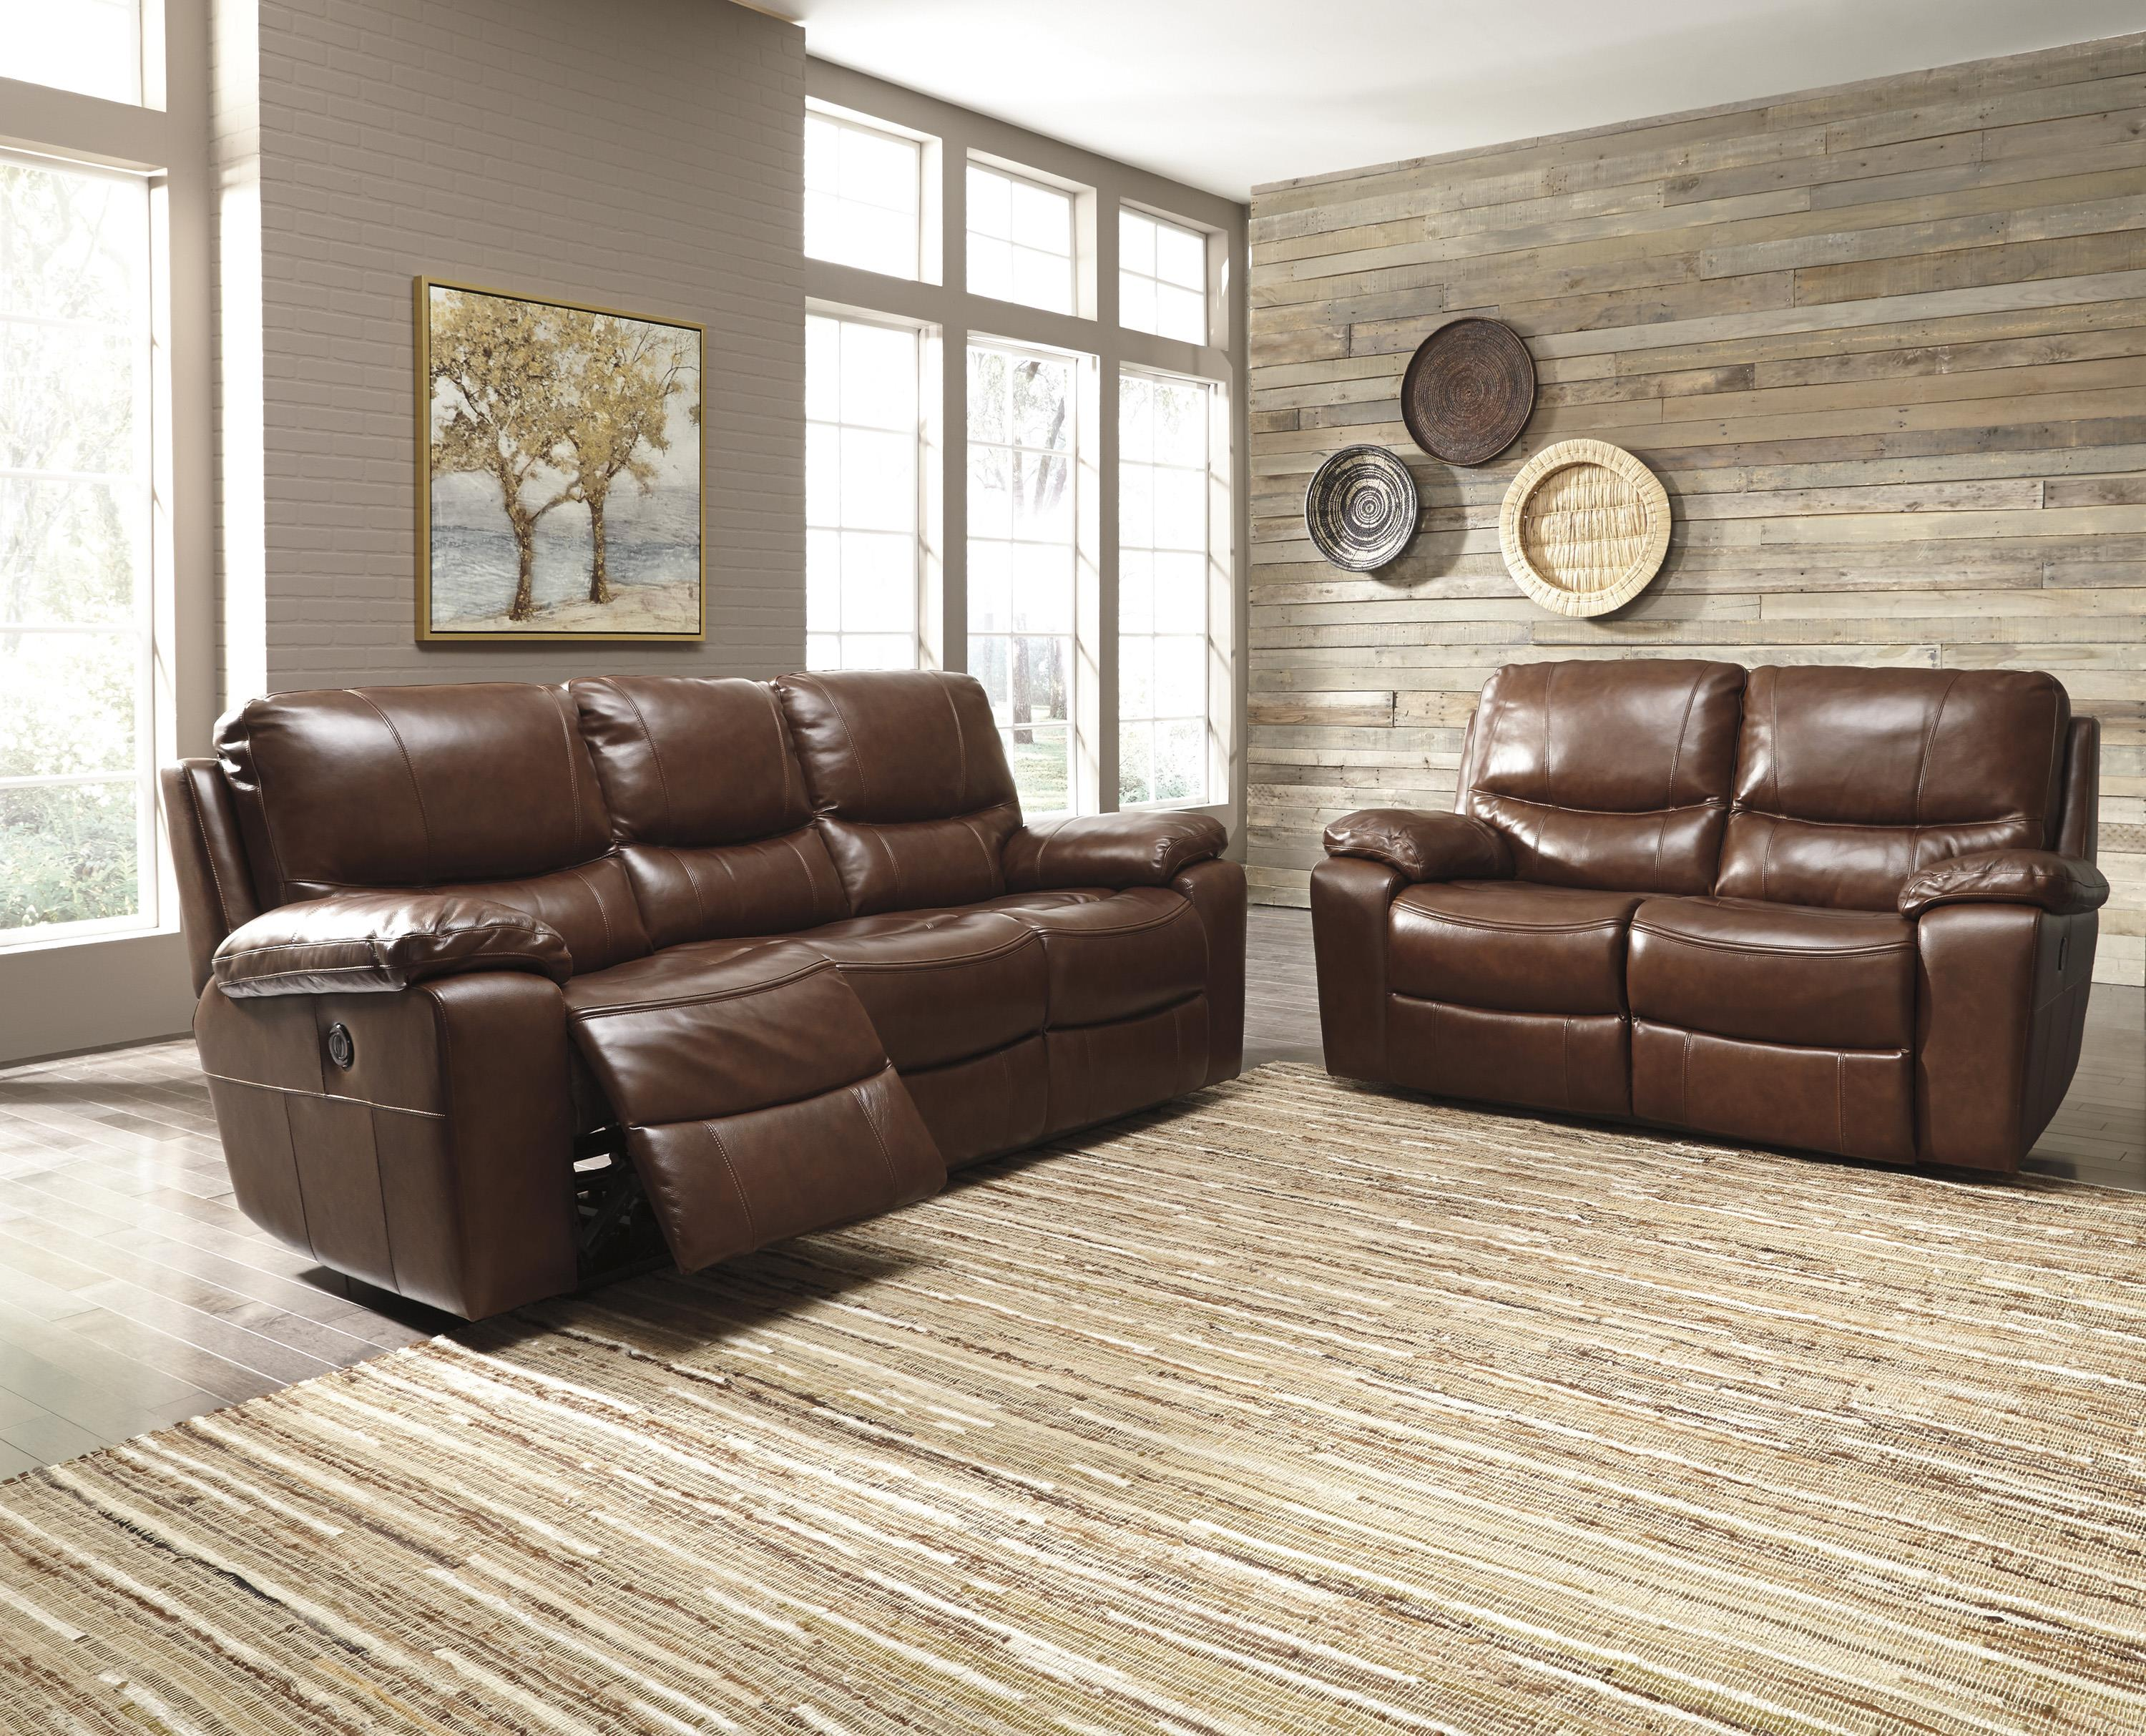 Signature Design by Ashley Panache Reclining Living Room Group - Item Number: U72900 Living Room Group 2